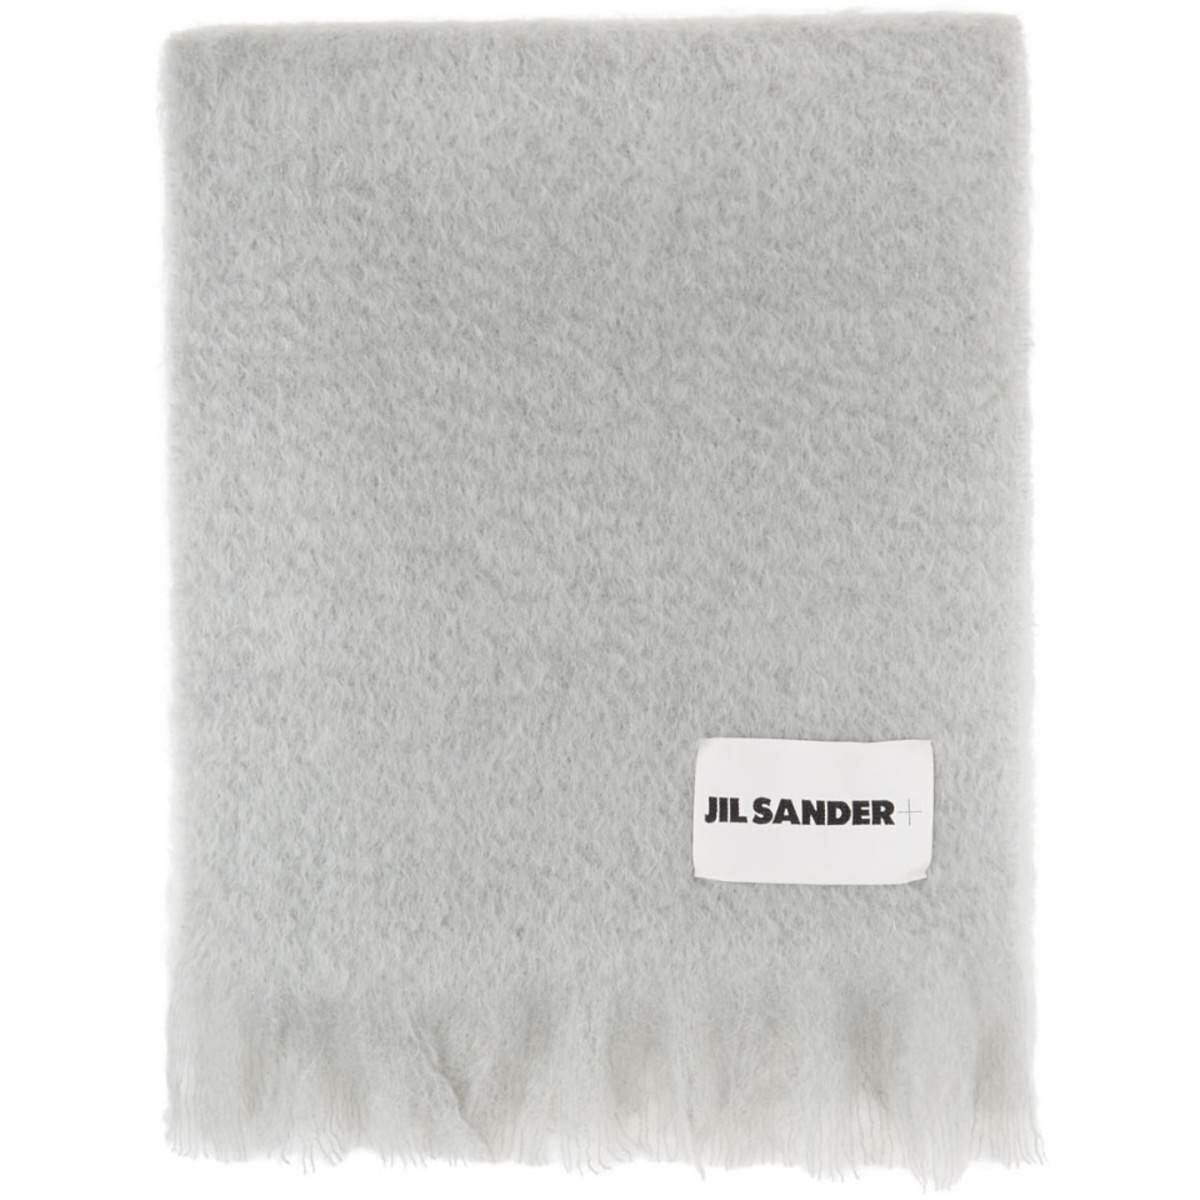 Jil Sander Grey Mohair and Wool Scarf Ssense USA MEN Men ACCESSORIES Mens SCARFS